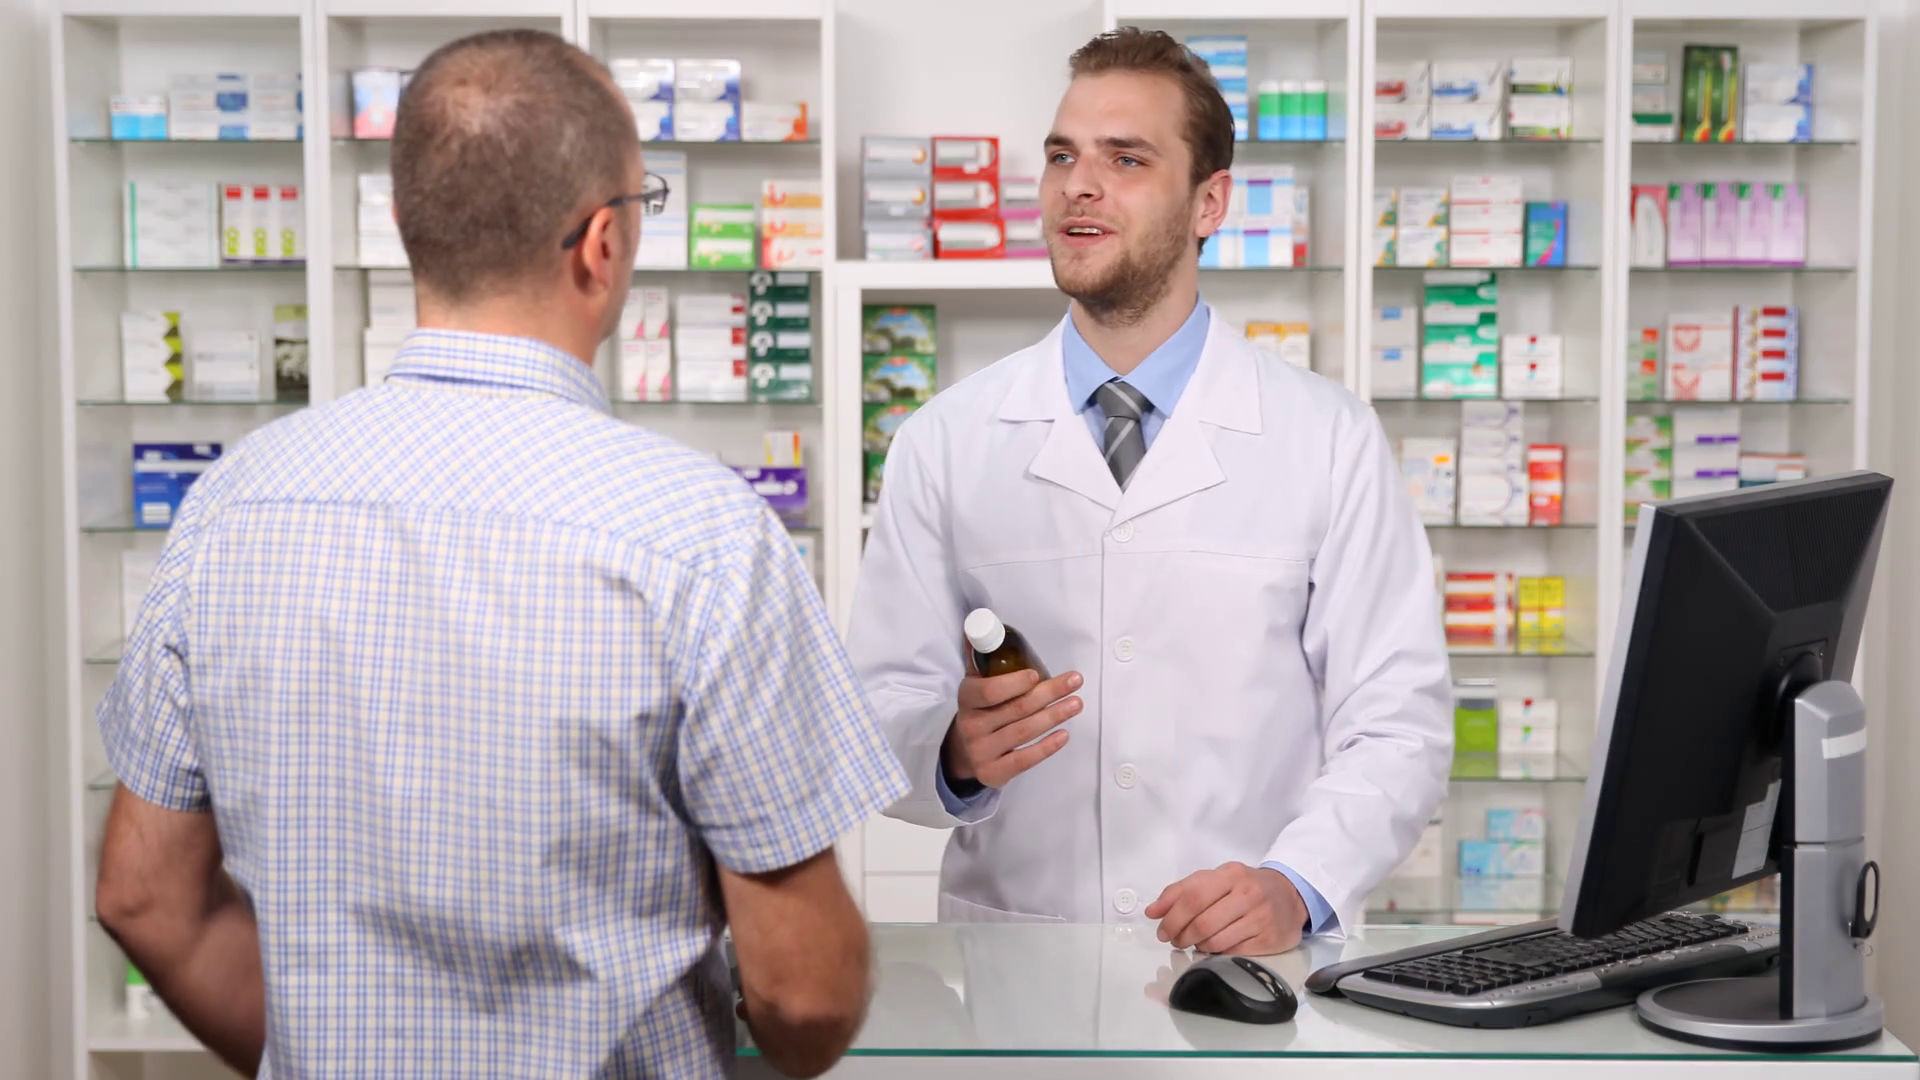 pharmacy-customer-get-medicine-advice-pharmacist-man-offer-specialist-assistance_rpxzuzaa_thumbnail-full01